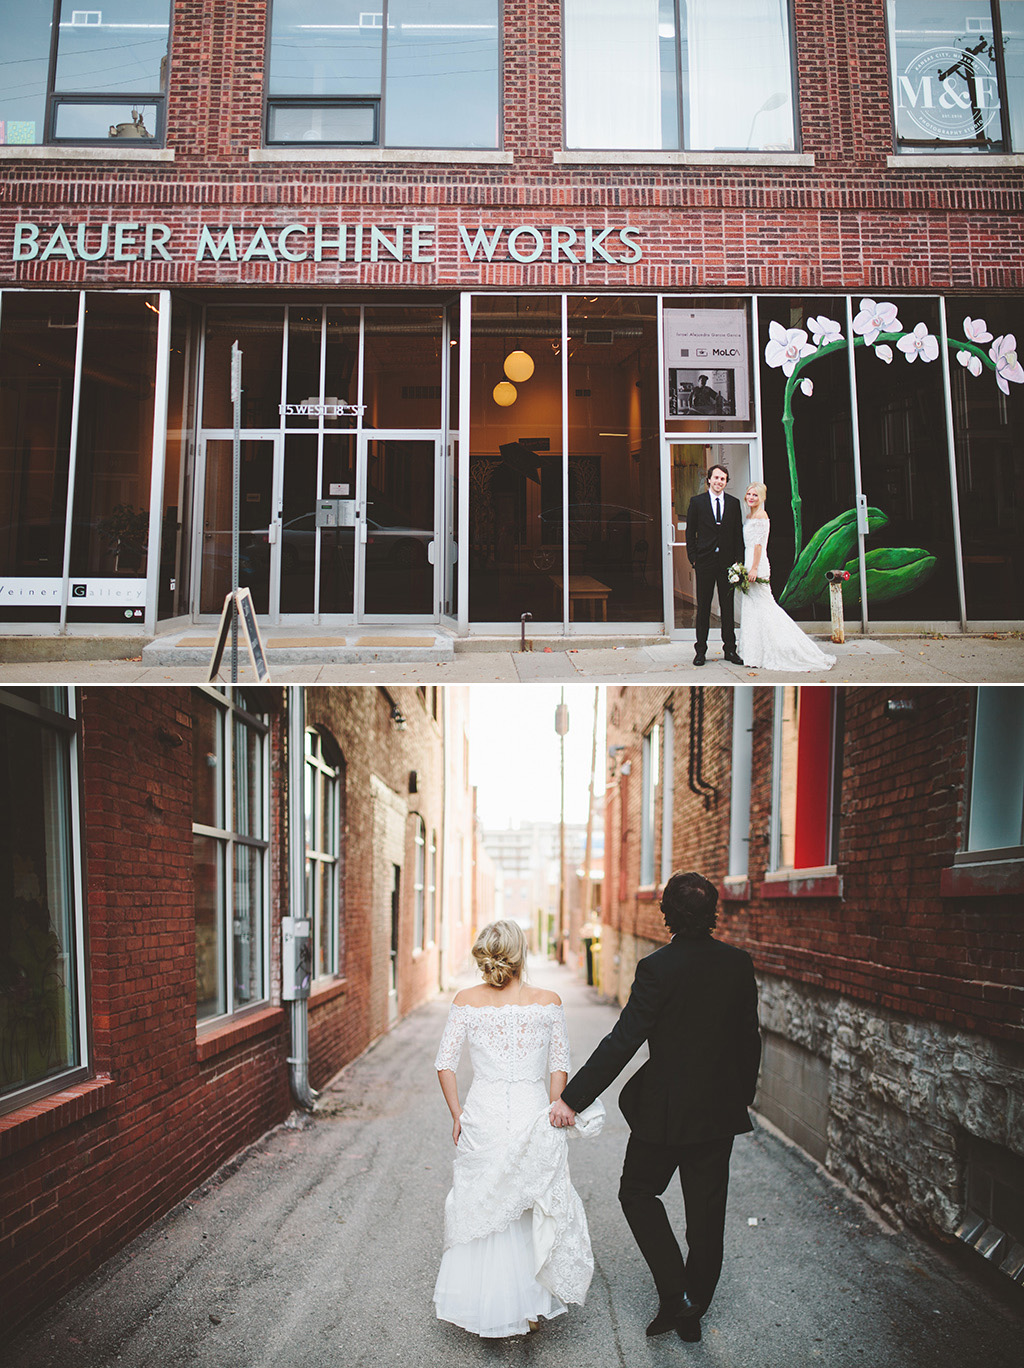 The Bride and the Bauer Wedding